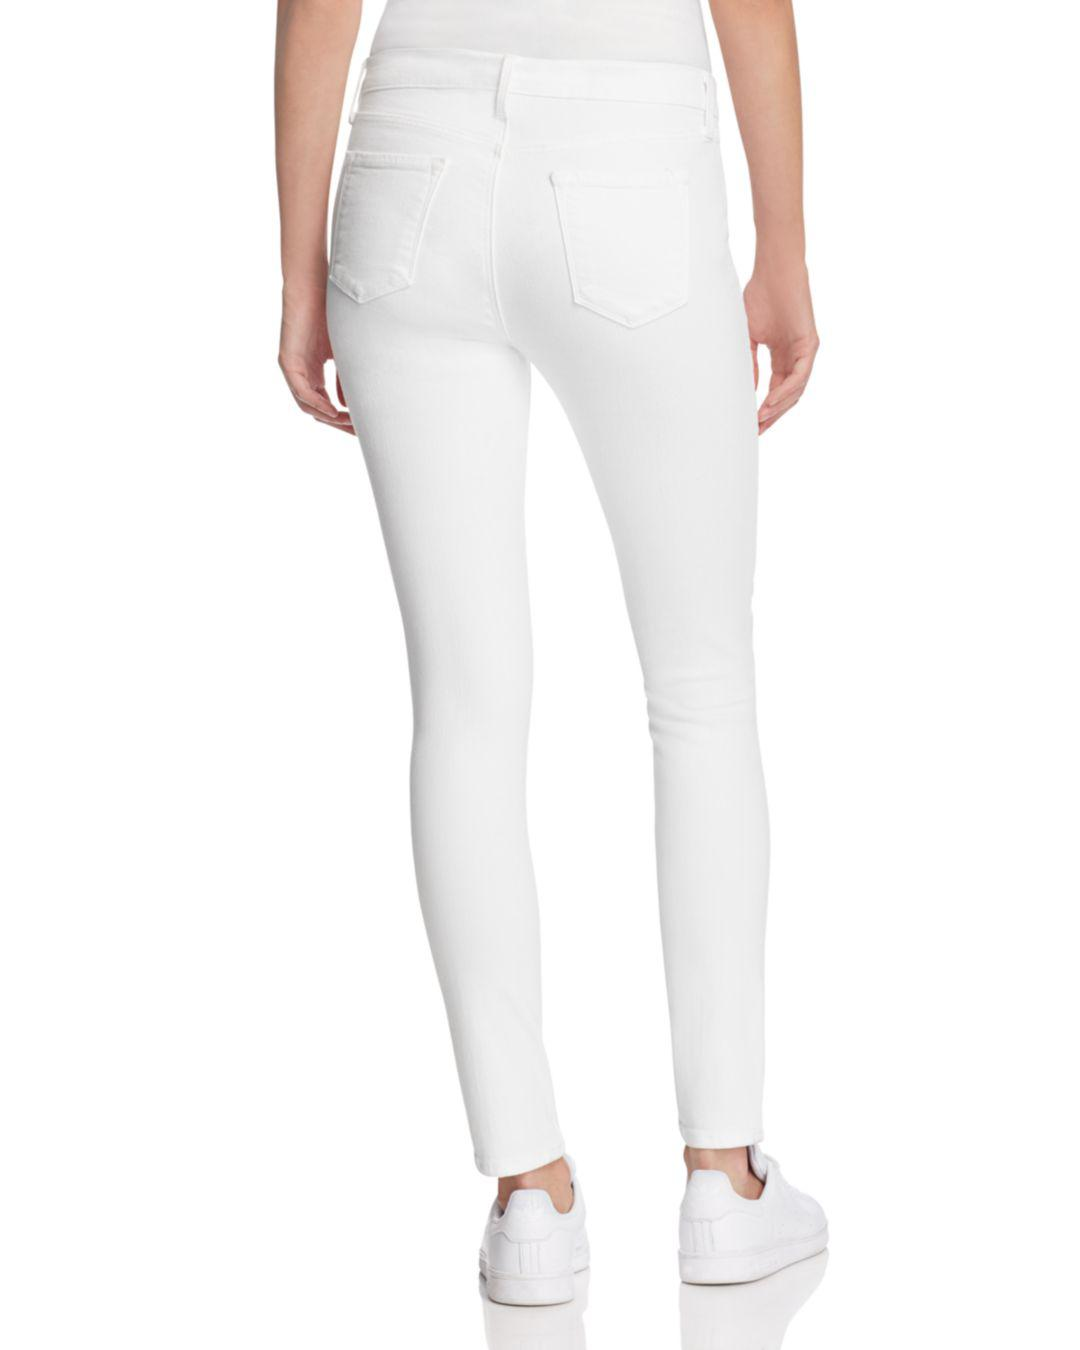 253f4c8a2f0b5 J Brand Mama J Skinny Maternity Jeans In Blanc in White - Save 45% - Lyst